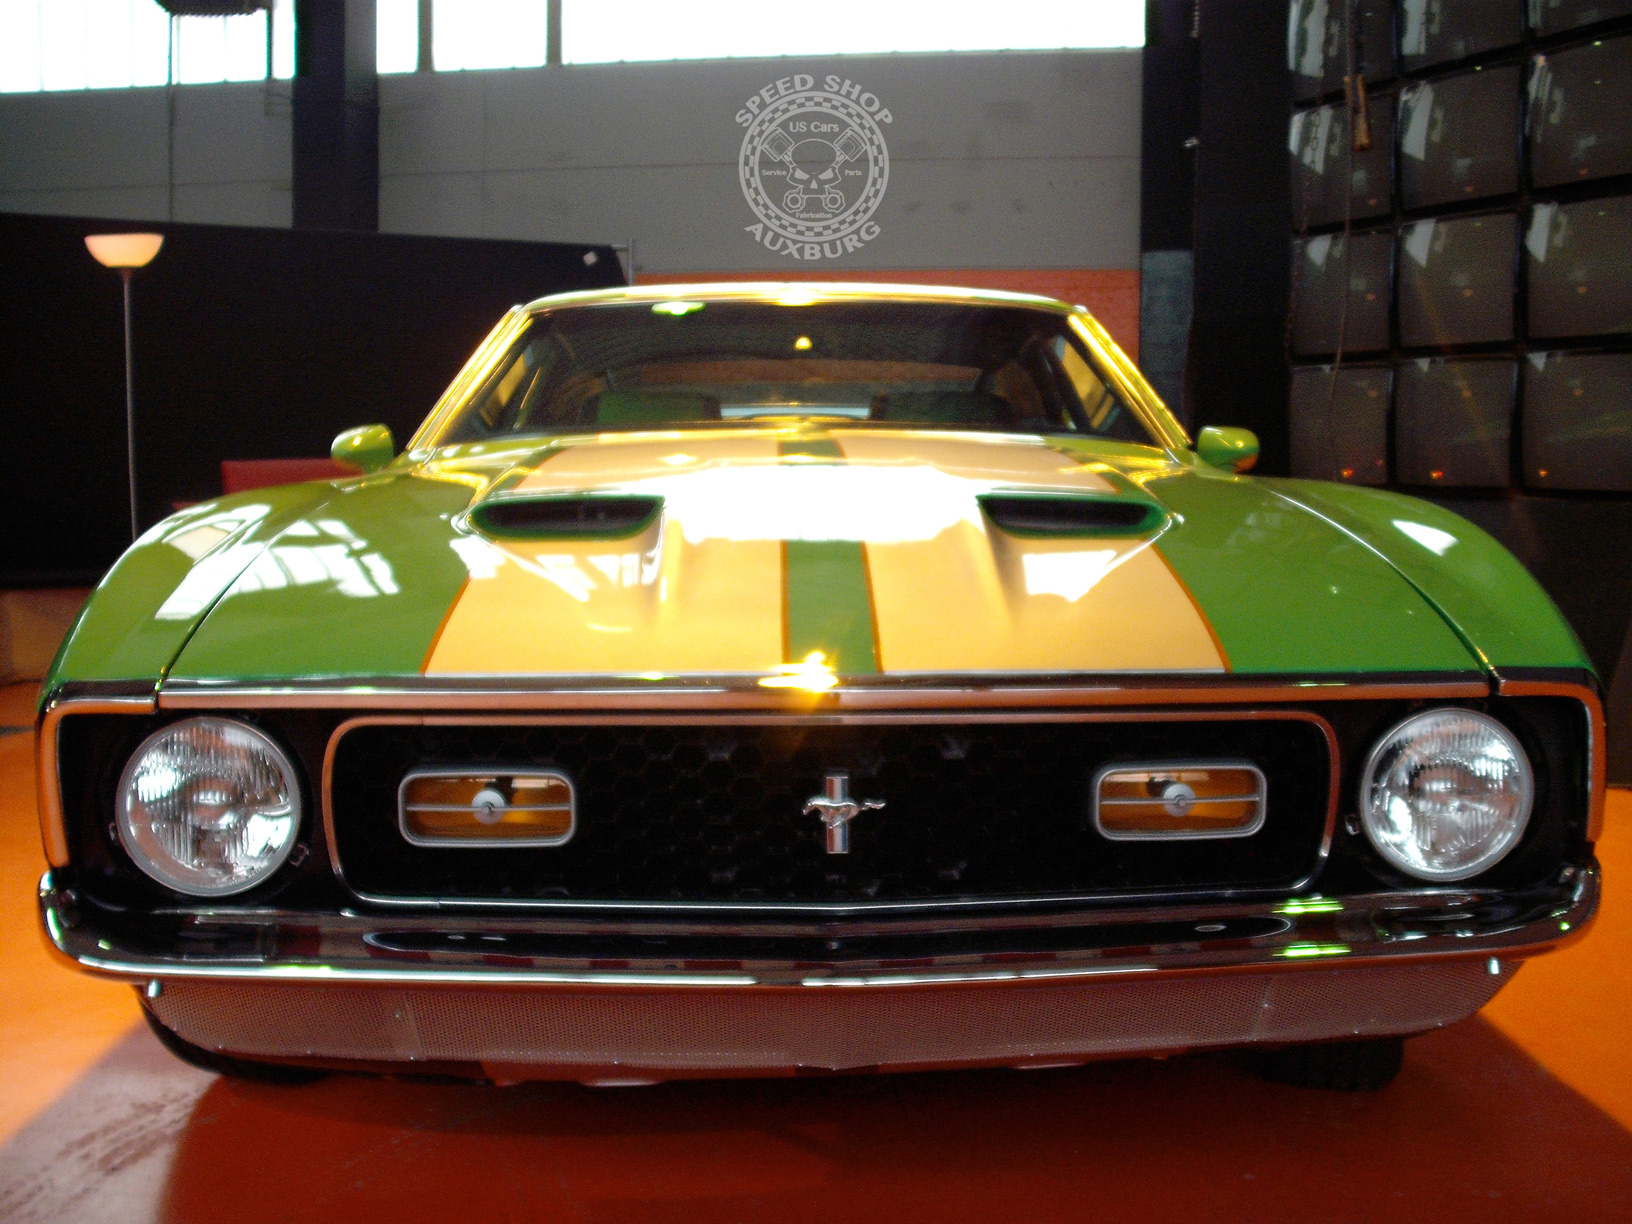 Ford Mustang Fastback Mach1 Auxburg-Speed-Shop.de